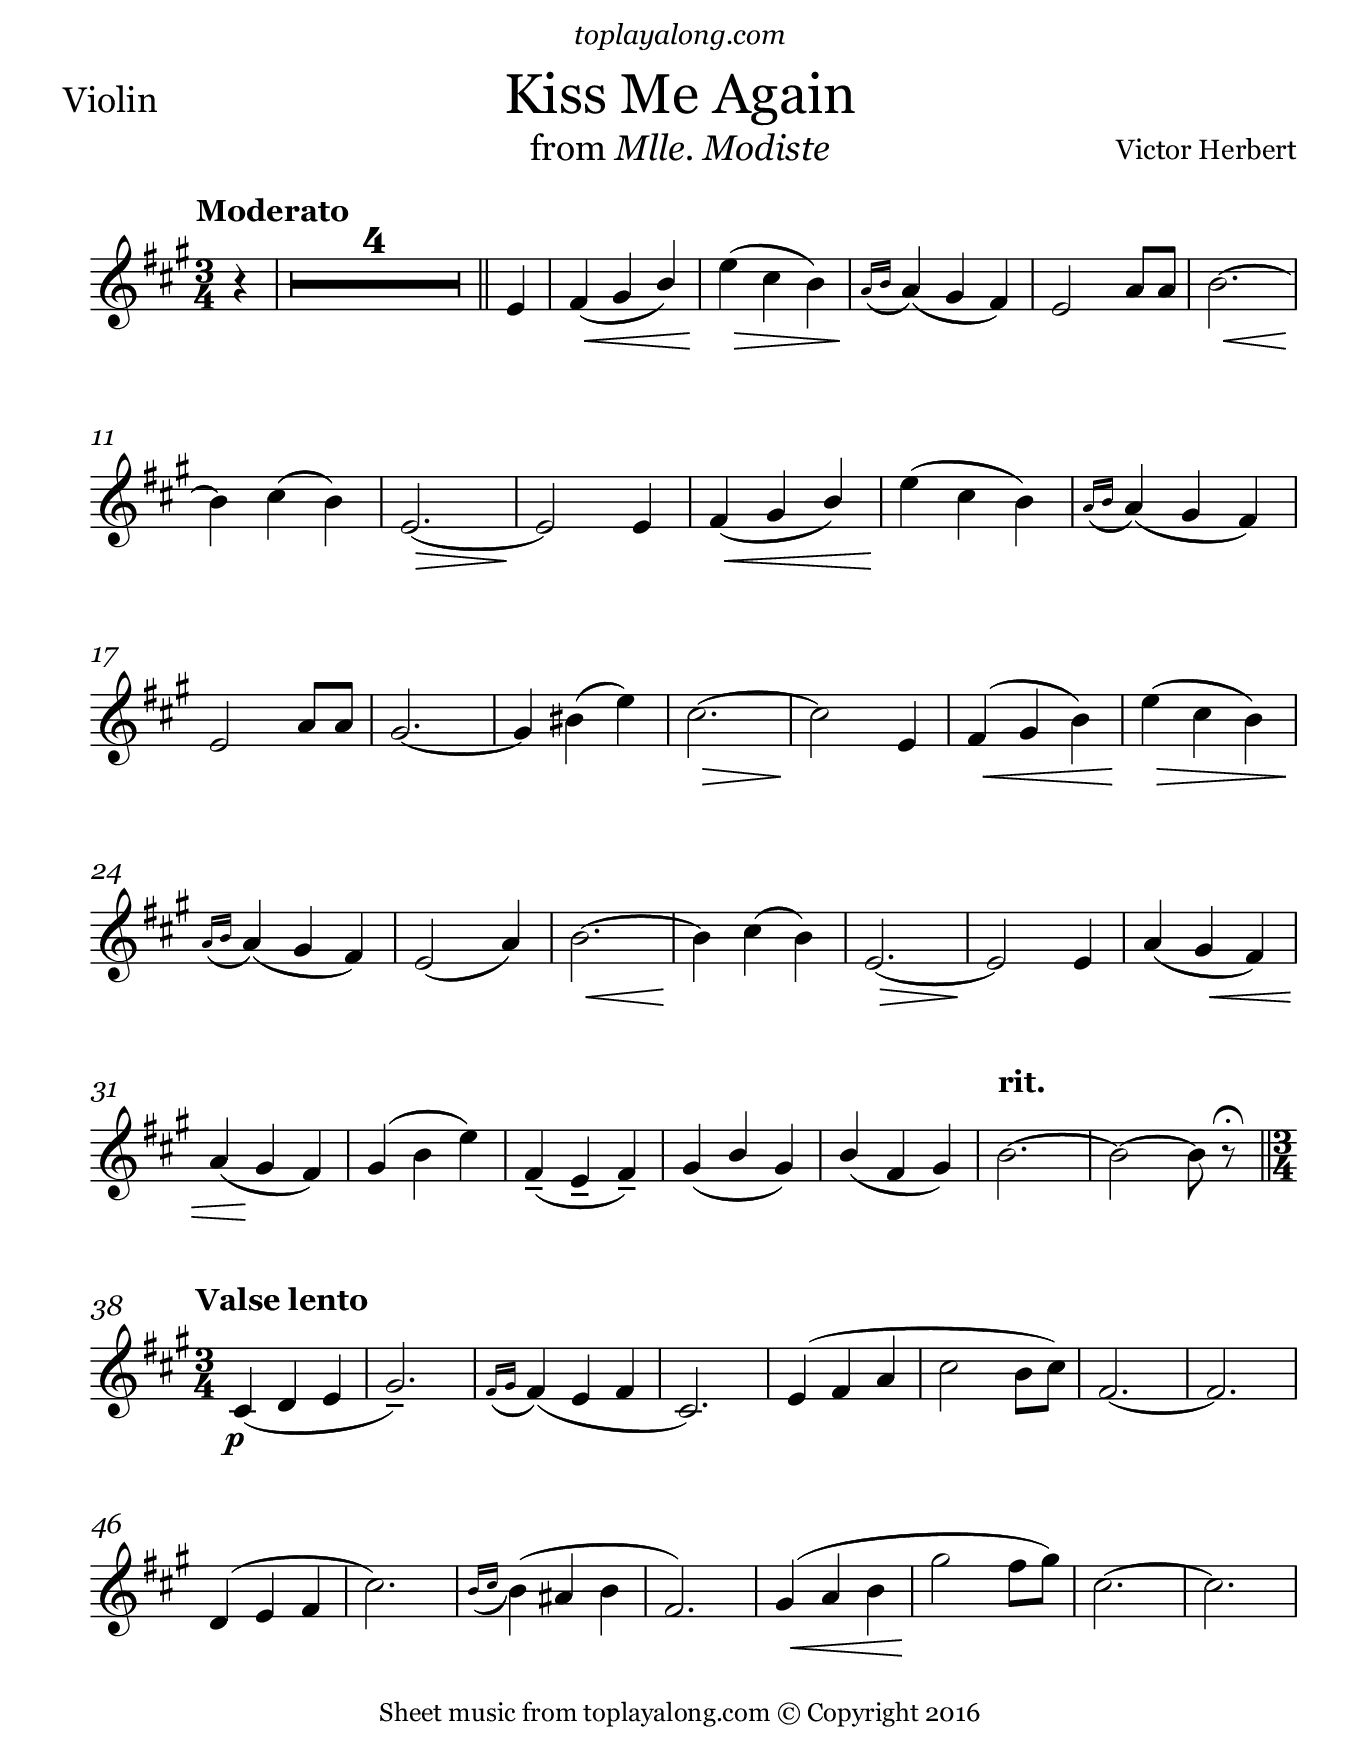 Kiss Me Again from Mlle. Modiste by Herbert. Sheet music for Violin, page 1.